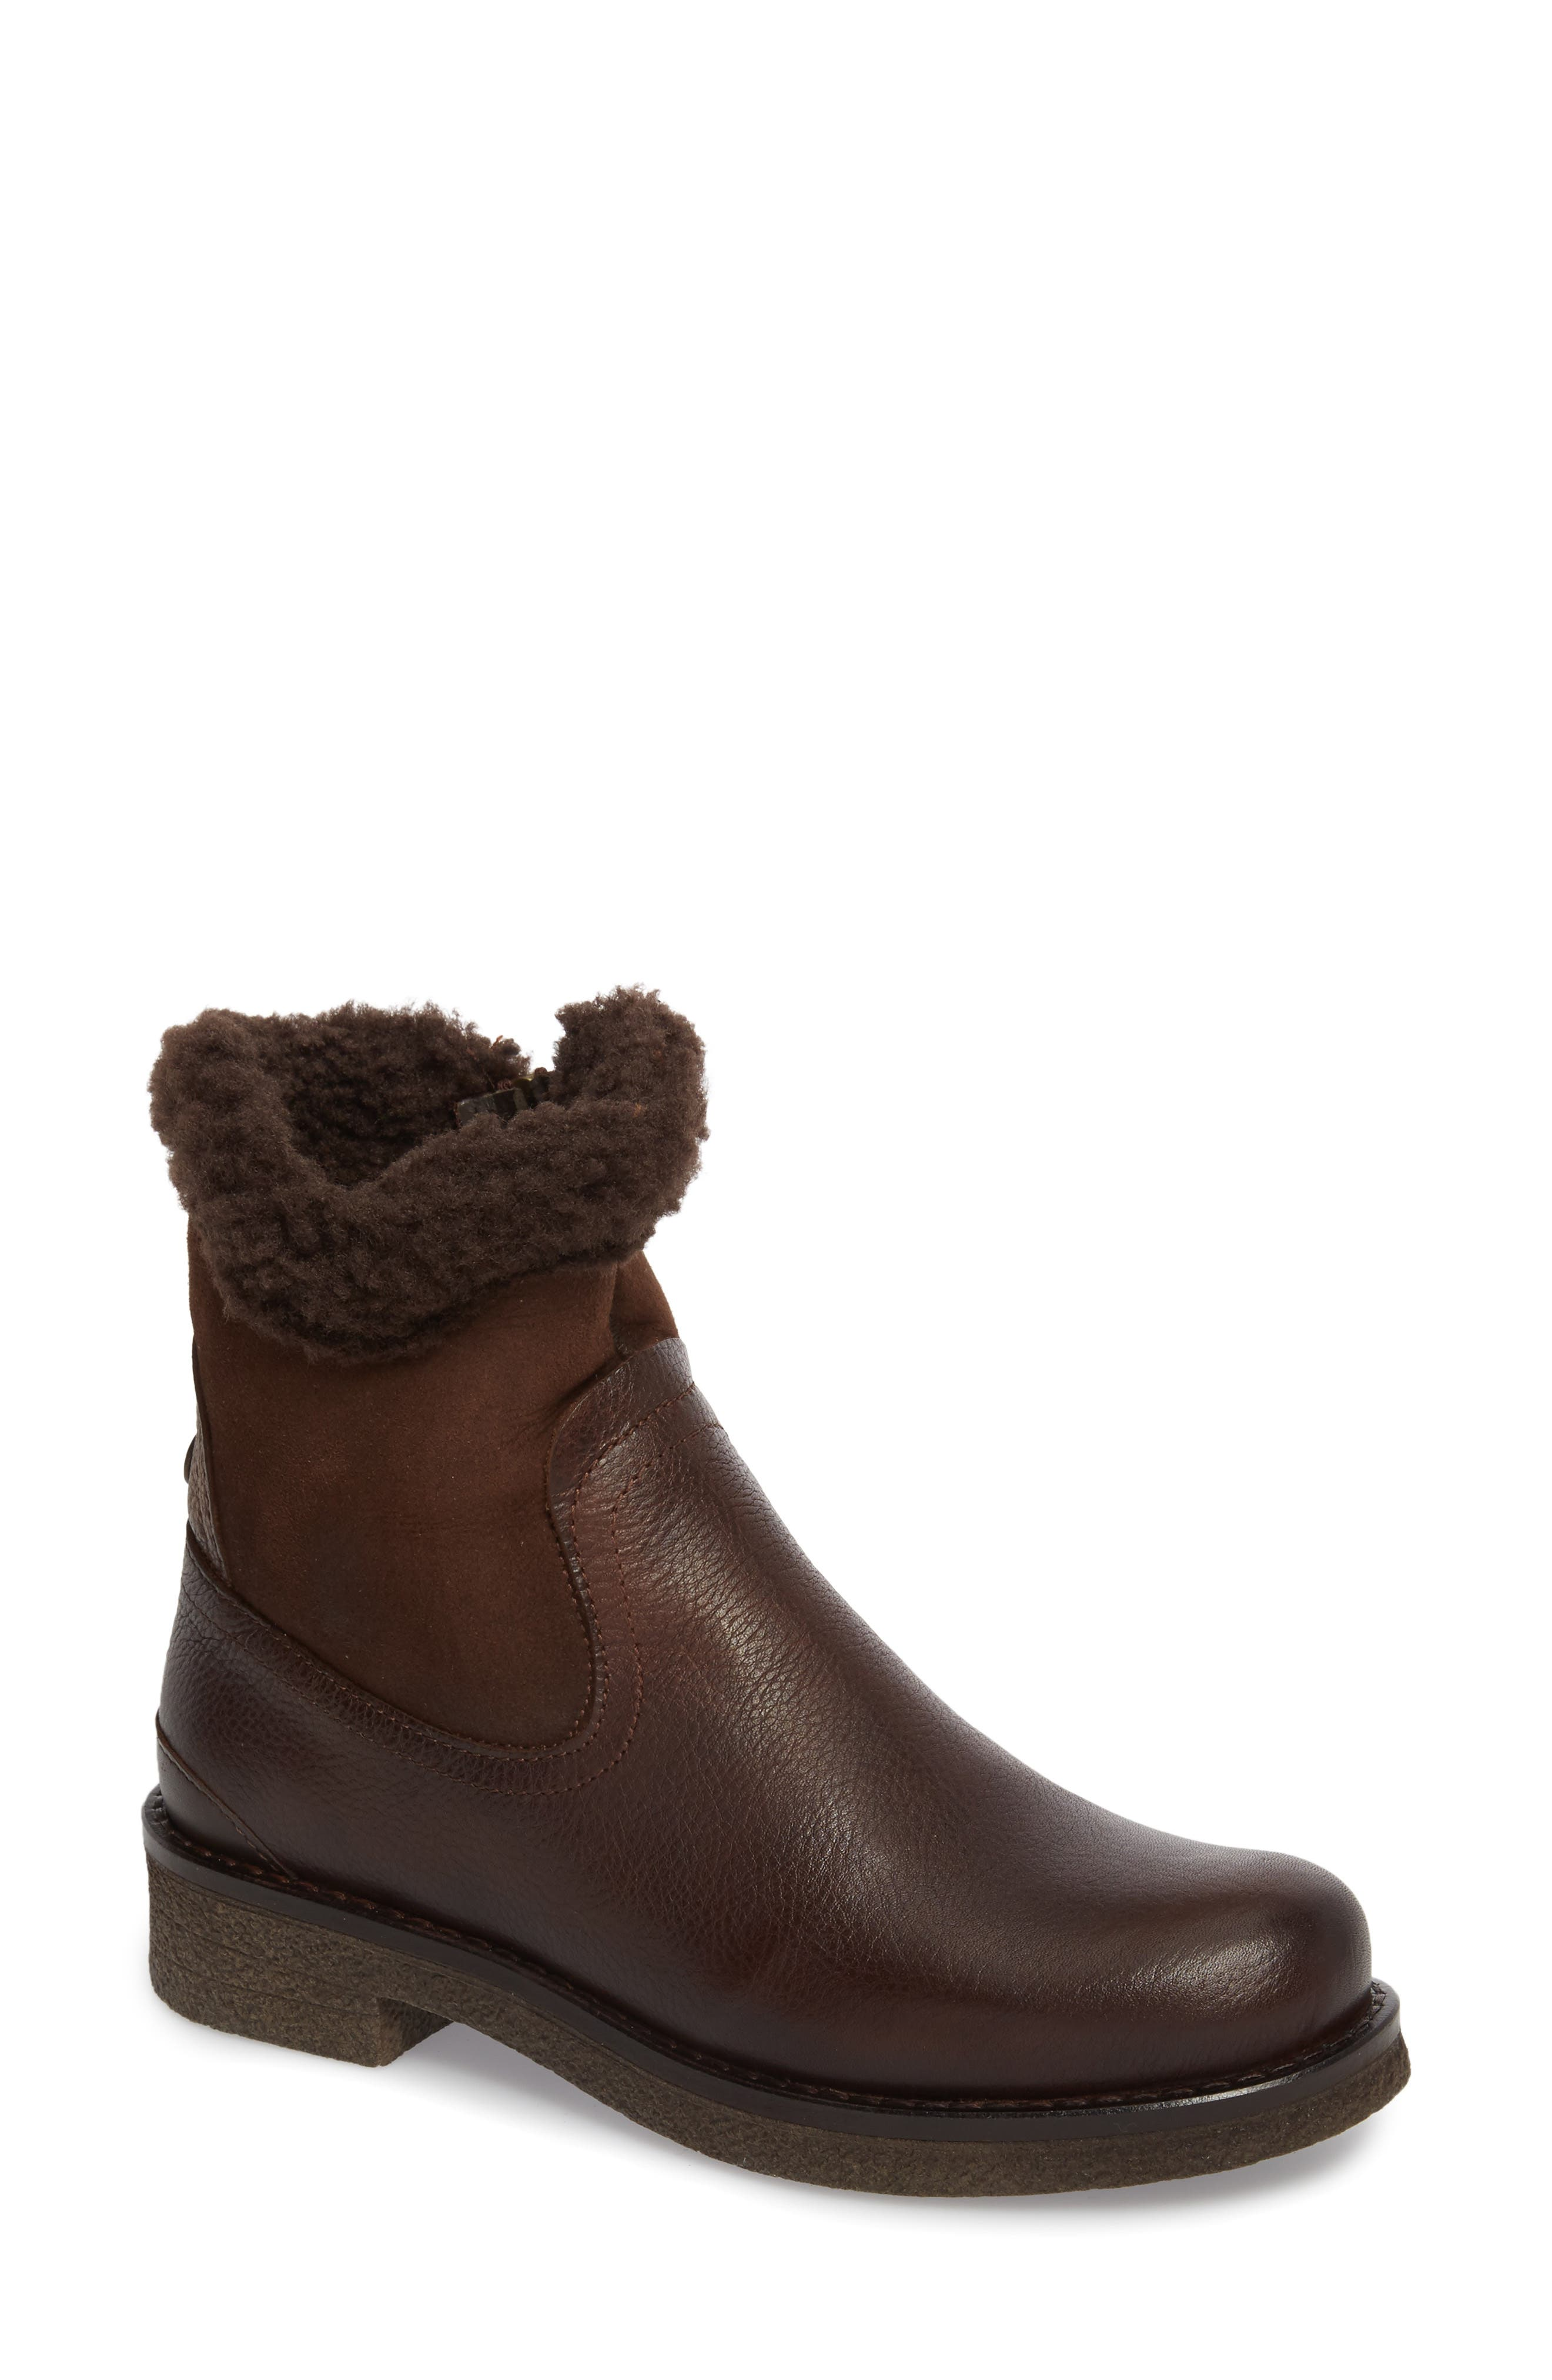 Odessa Waterproof Insulated Snow Boot,                         Main,                         color, Brown Fur Leather